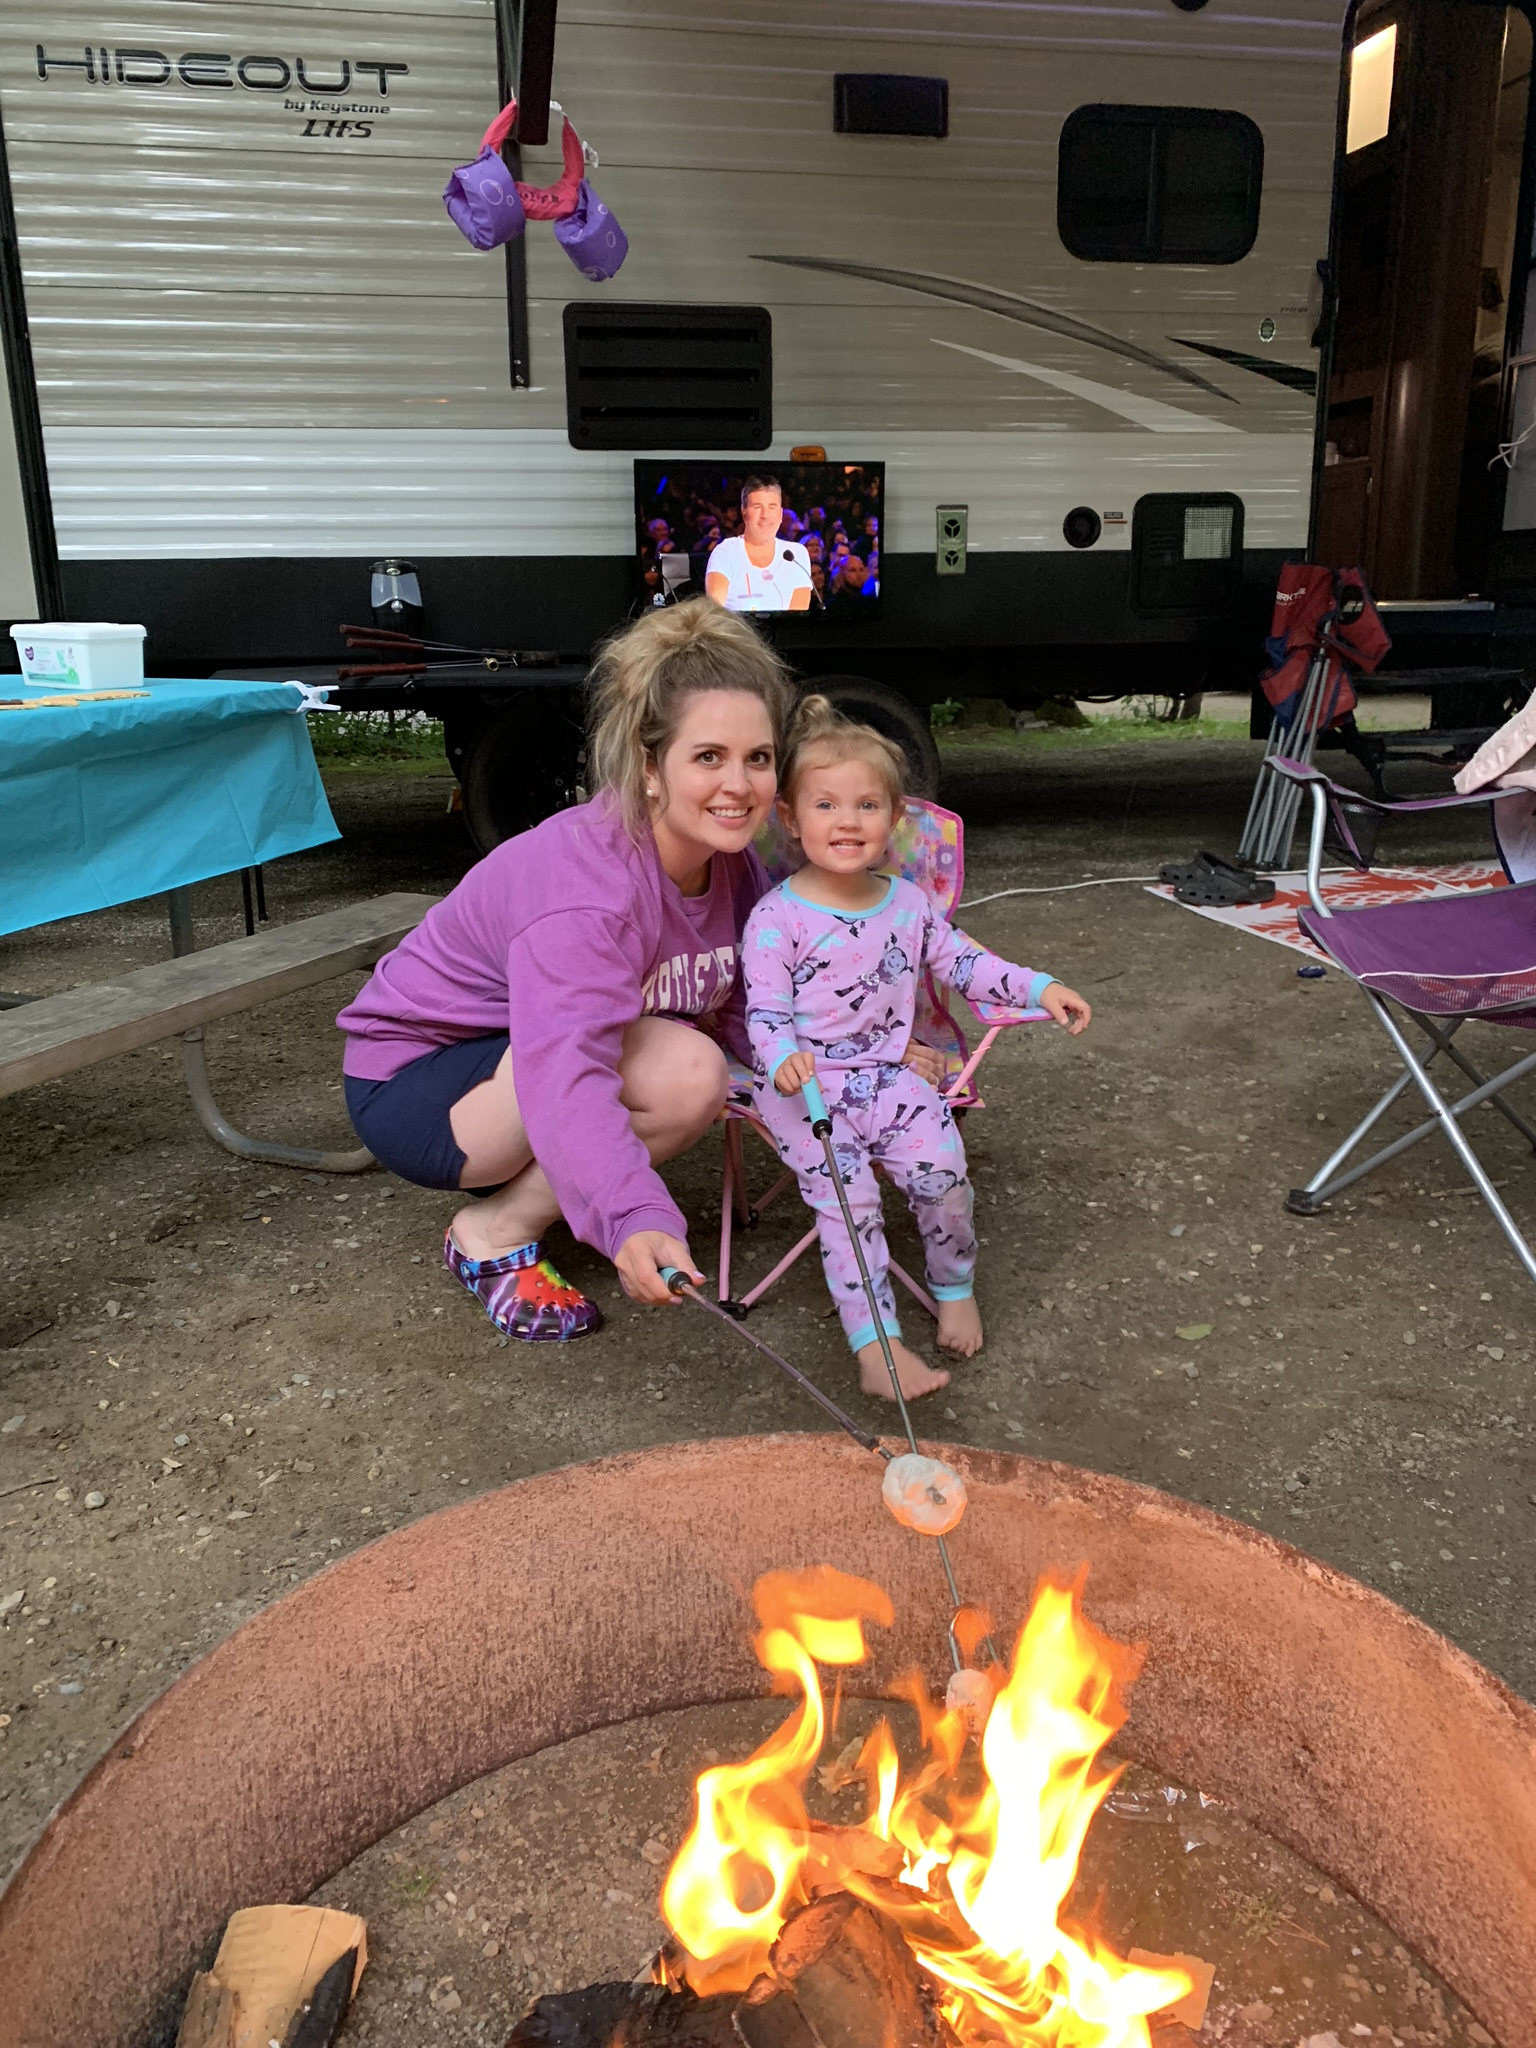 Family in front of fire with Smore smiles